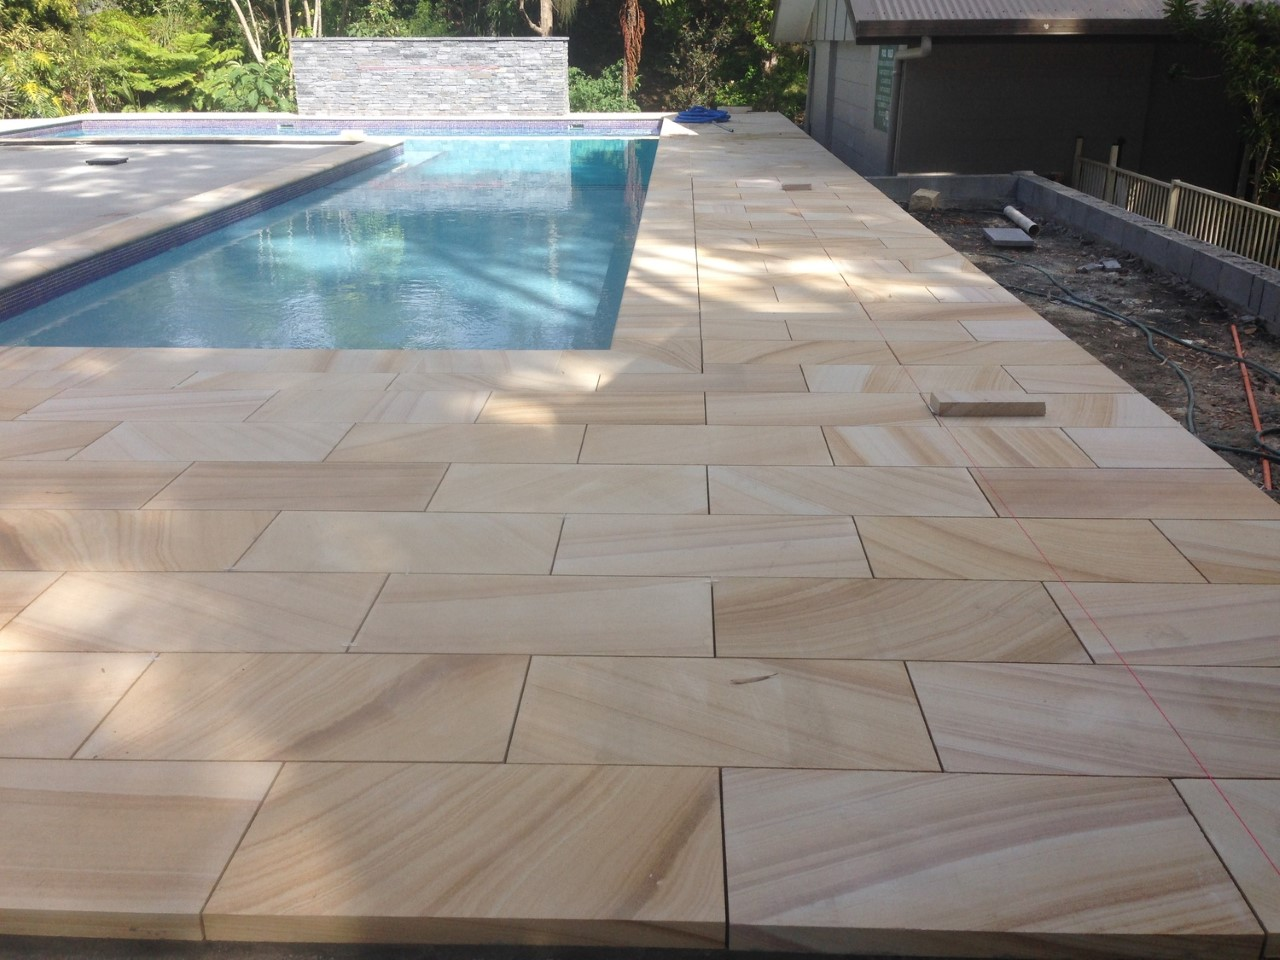 01 Austrailian sandstone pool decking,  NATURAL SANDSTONE HONED AND CALIBRATED.  50 x 100cm x 3cm.jpg